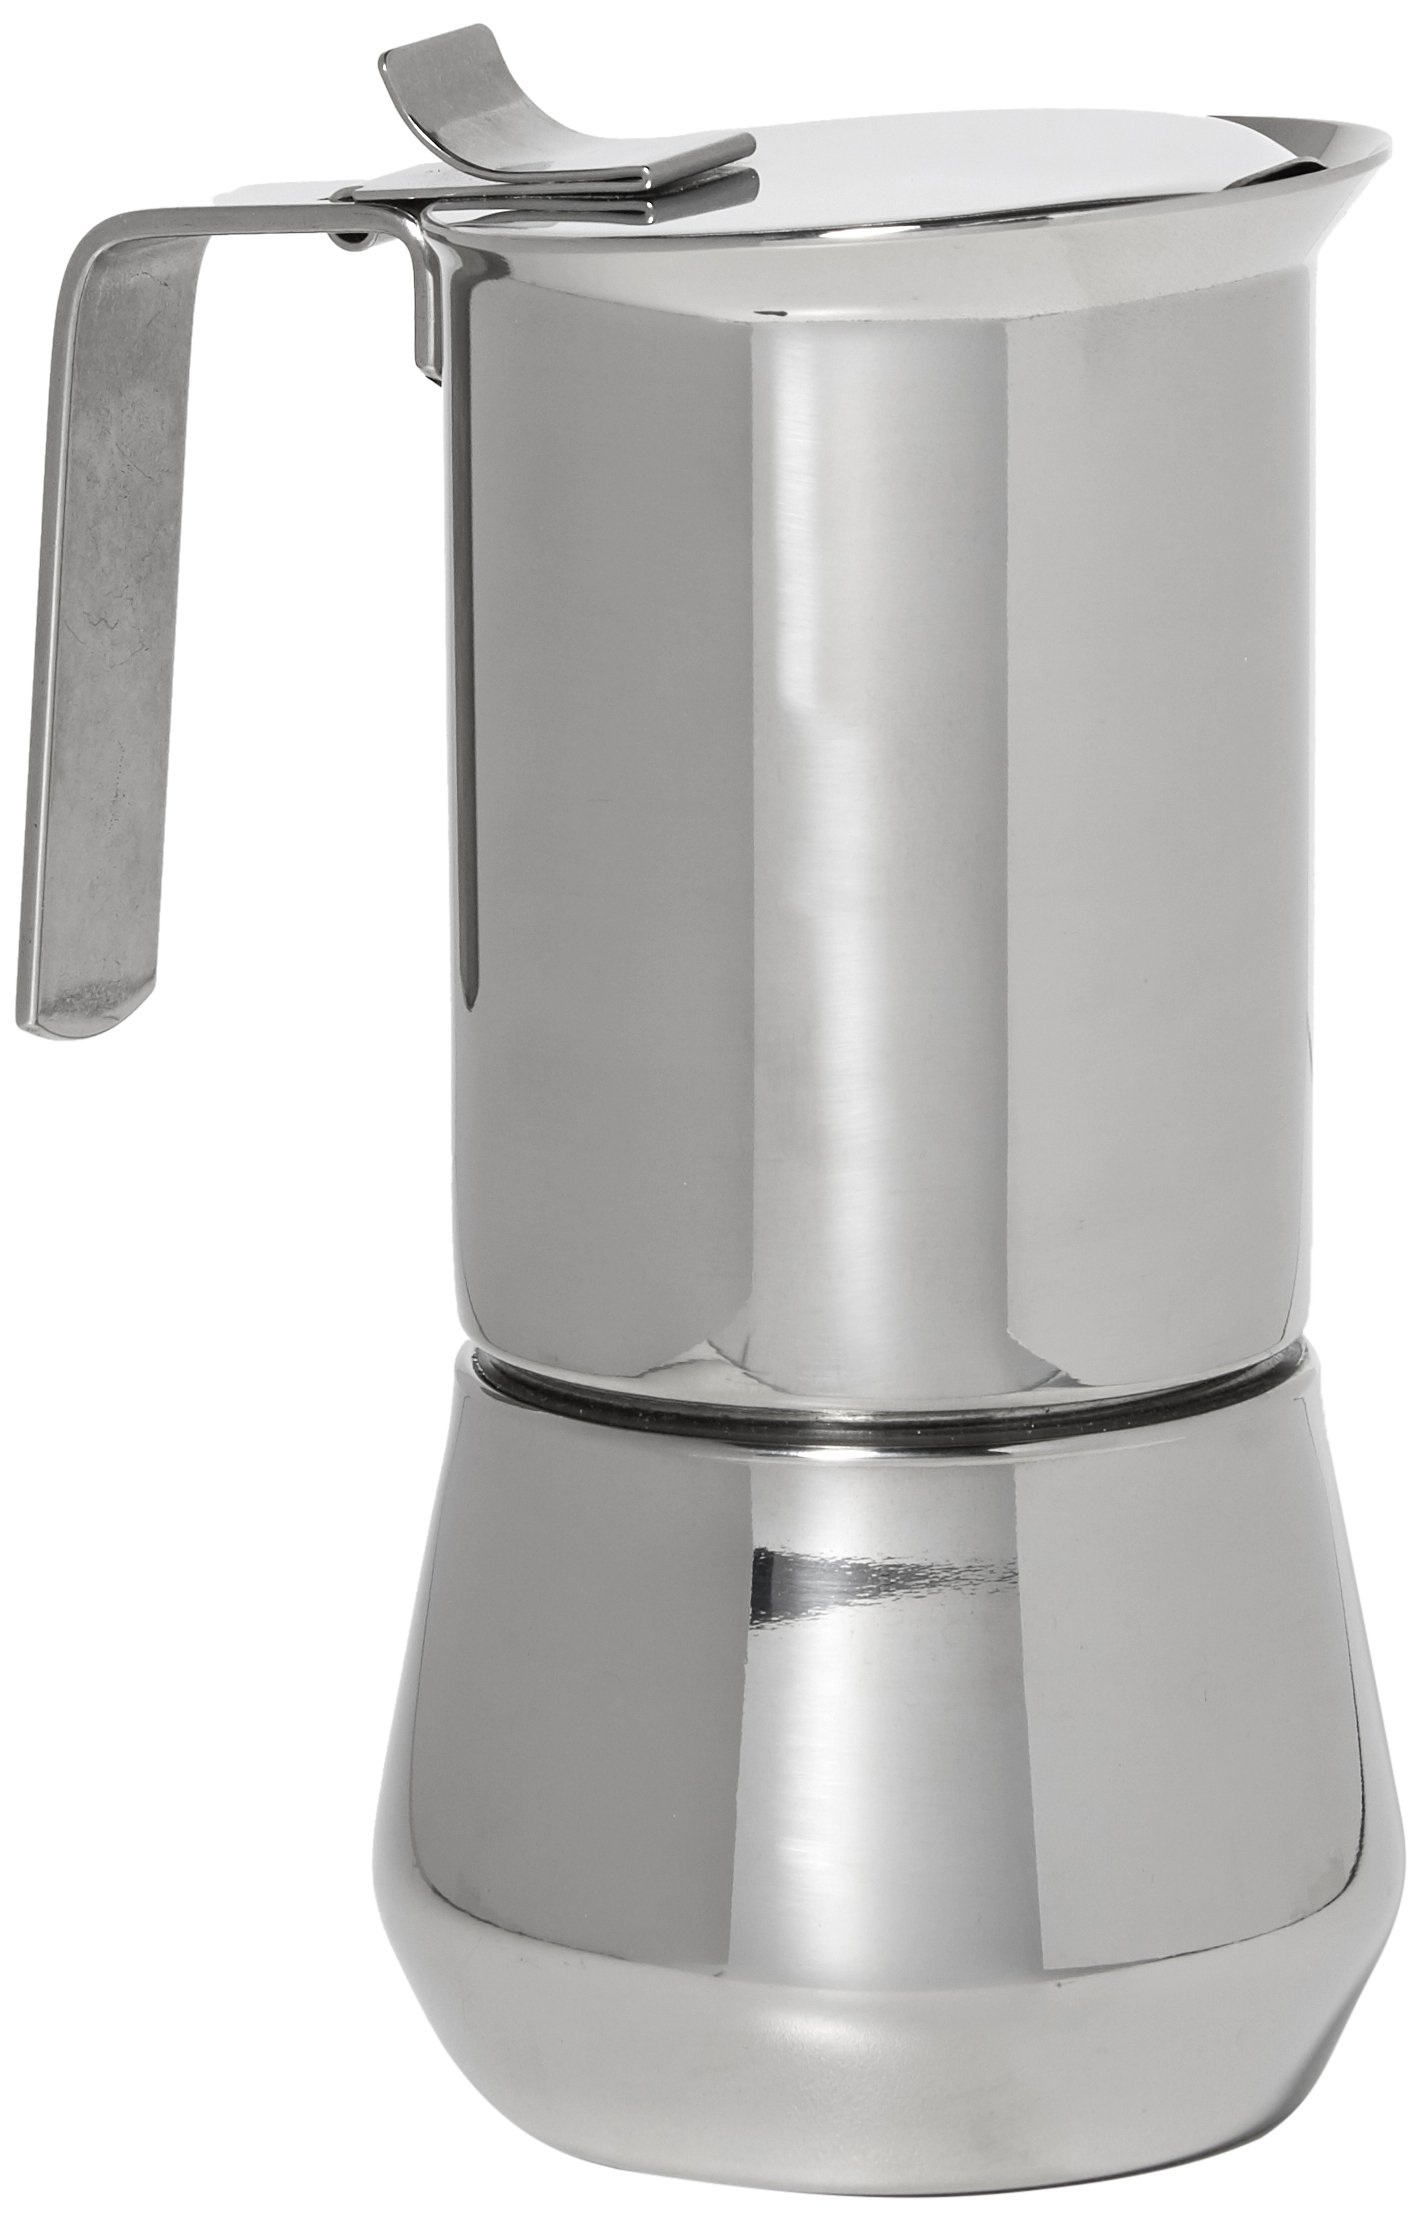 ILSA 122-3, Stainless Steel Stove-Top Espresso Maker, 3- cup by Ilsa